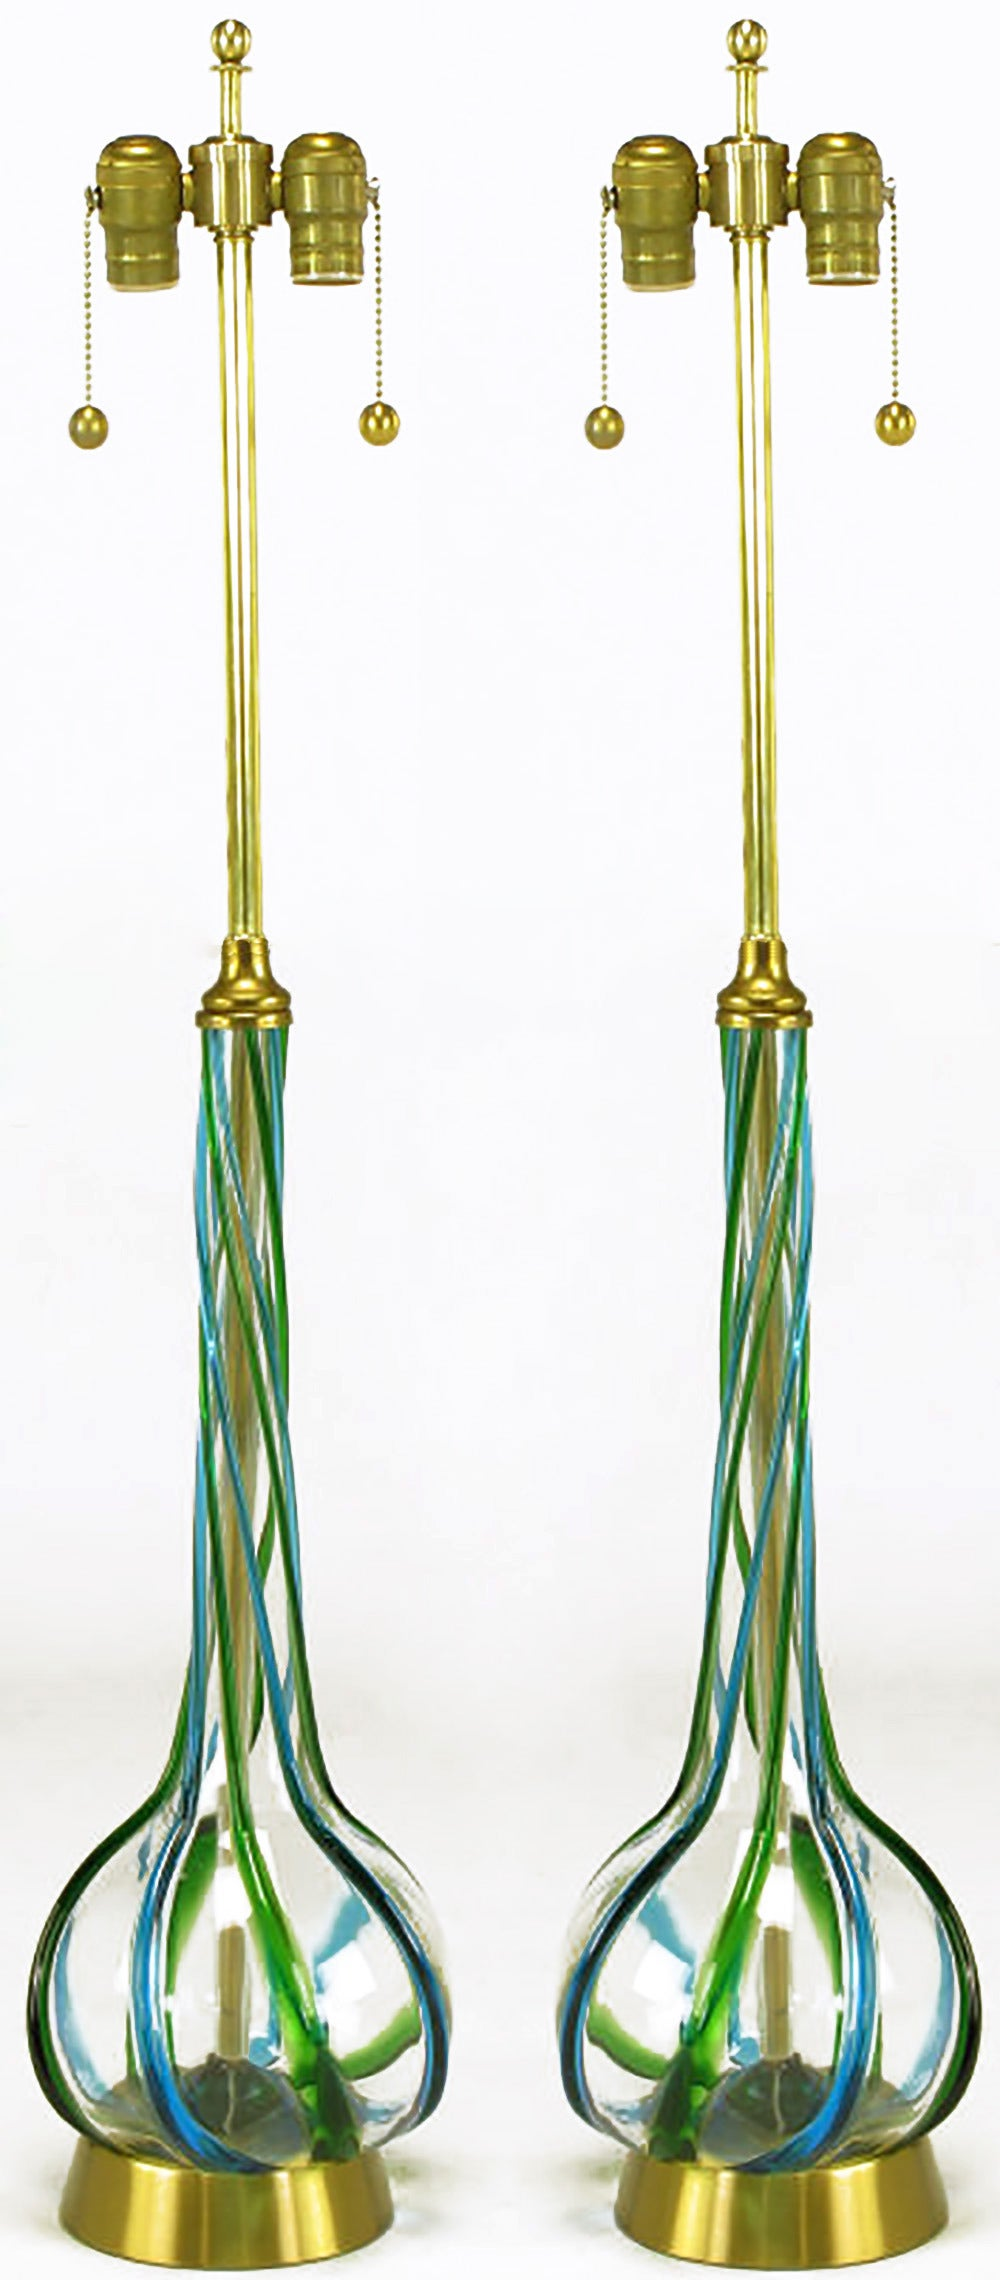 Pair of Italian Murano glass long stem gourd form table lamps. Handblown and twisted with relief ribbon in blue and green. Spun brass base with brass stem and brass double socket cluster with pull chains.